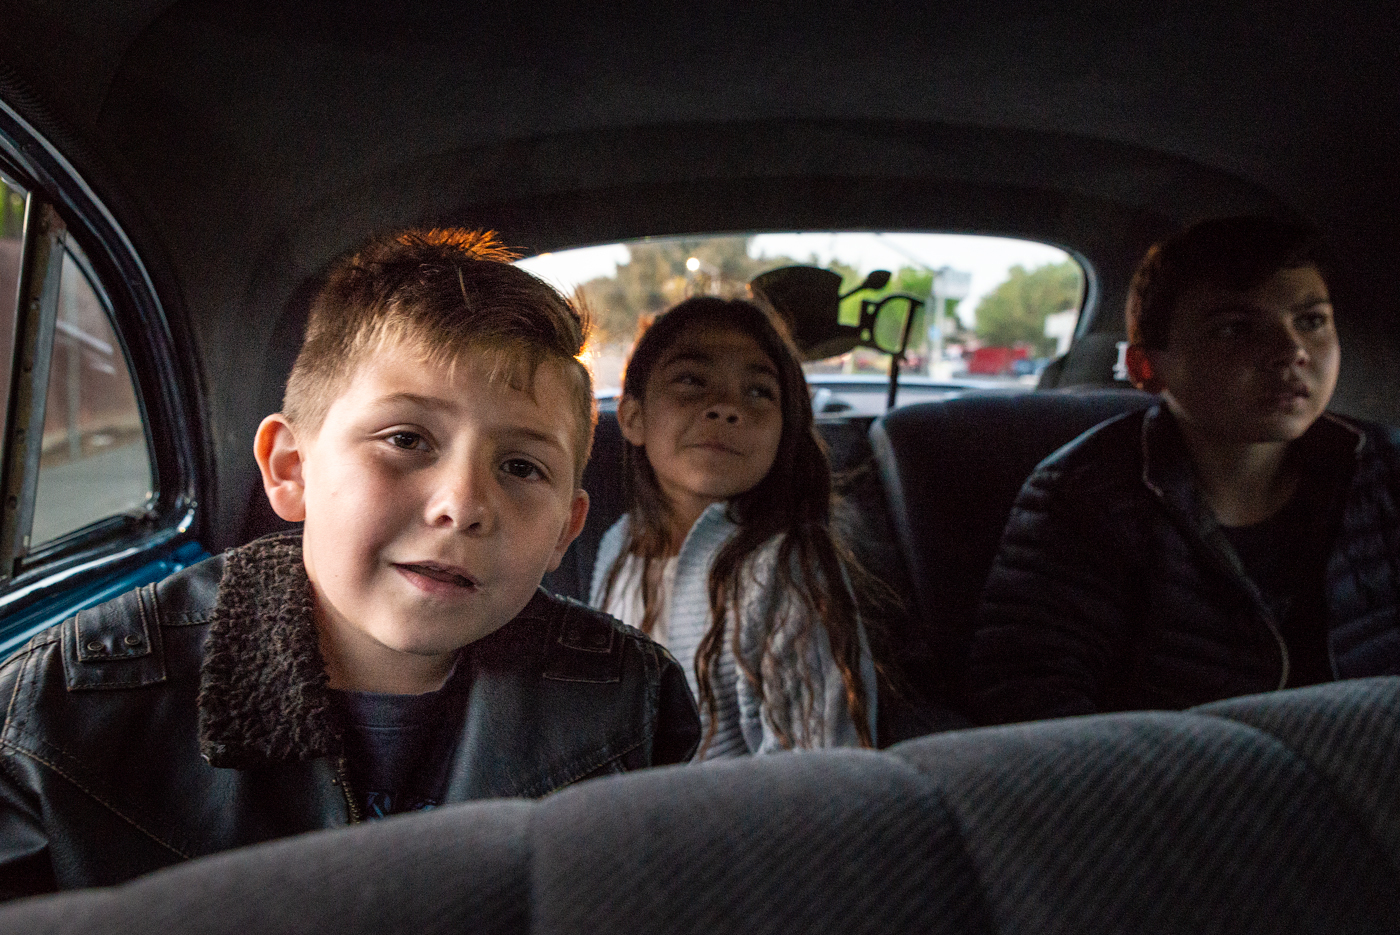 The Rodriguez kids love to cruise. They've already started fighting about who gets which lowrider when they're old enough to drive.